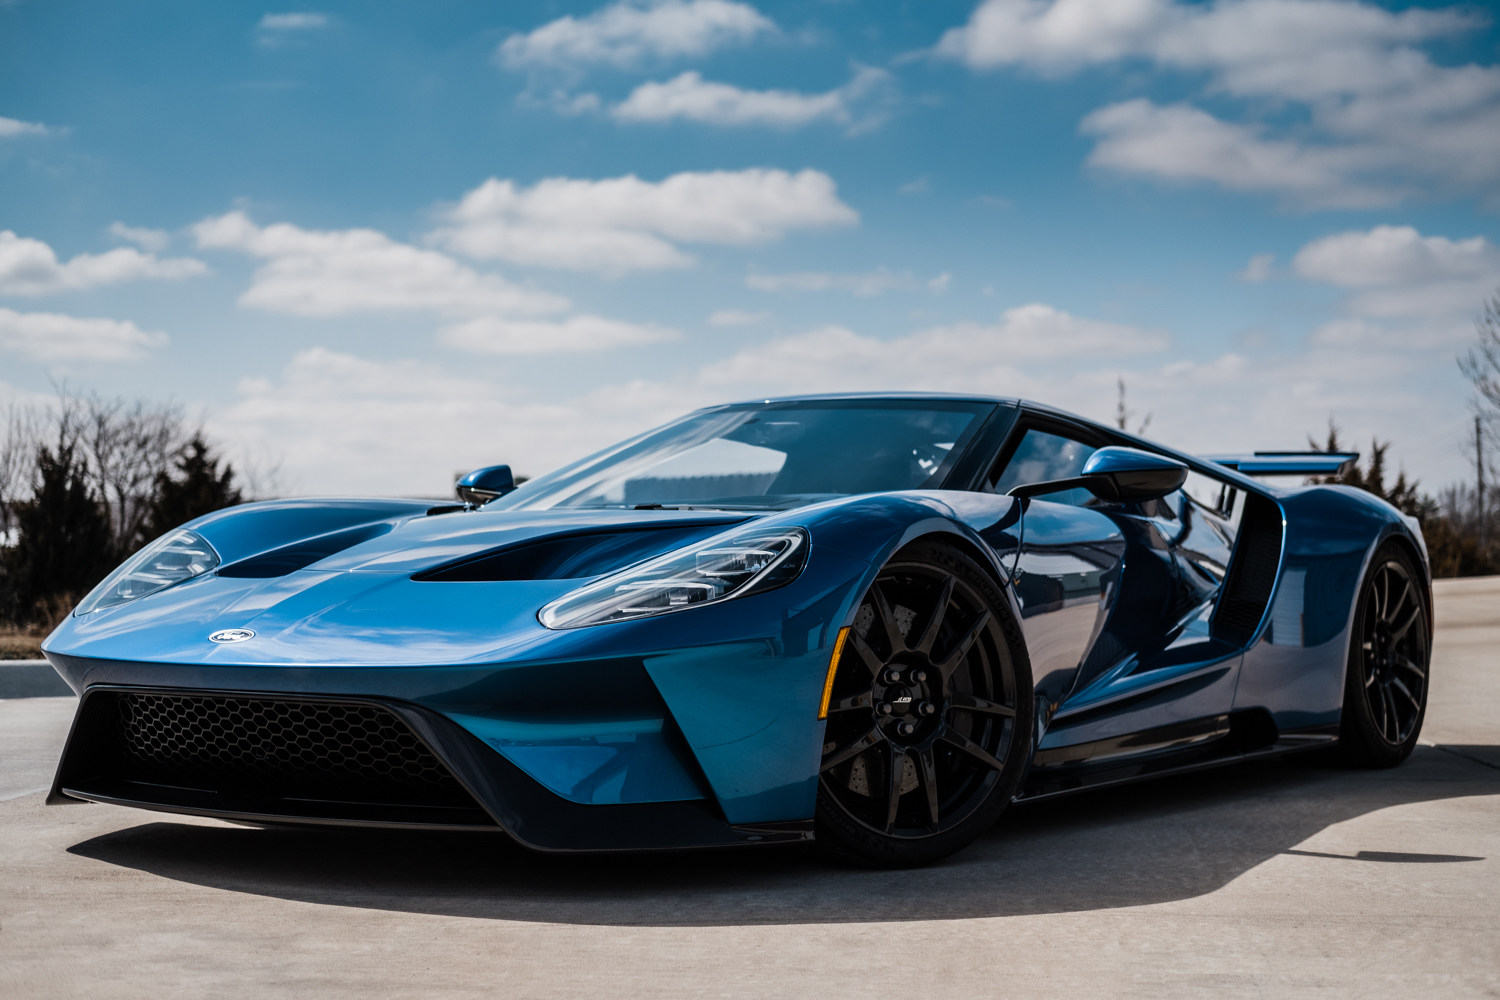 Ford GT-XPEL Ultimate Paint Protection Film-Full-body Wrap-Paint Protection Film-Clear Bra-Ford Performance-189.jpg